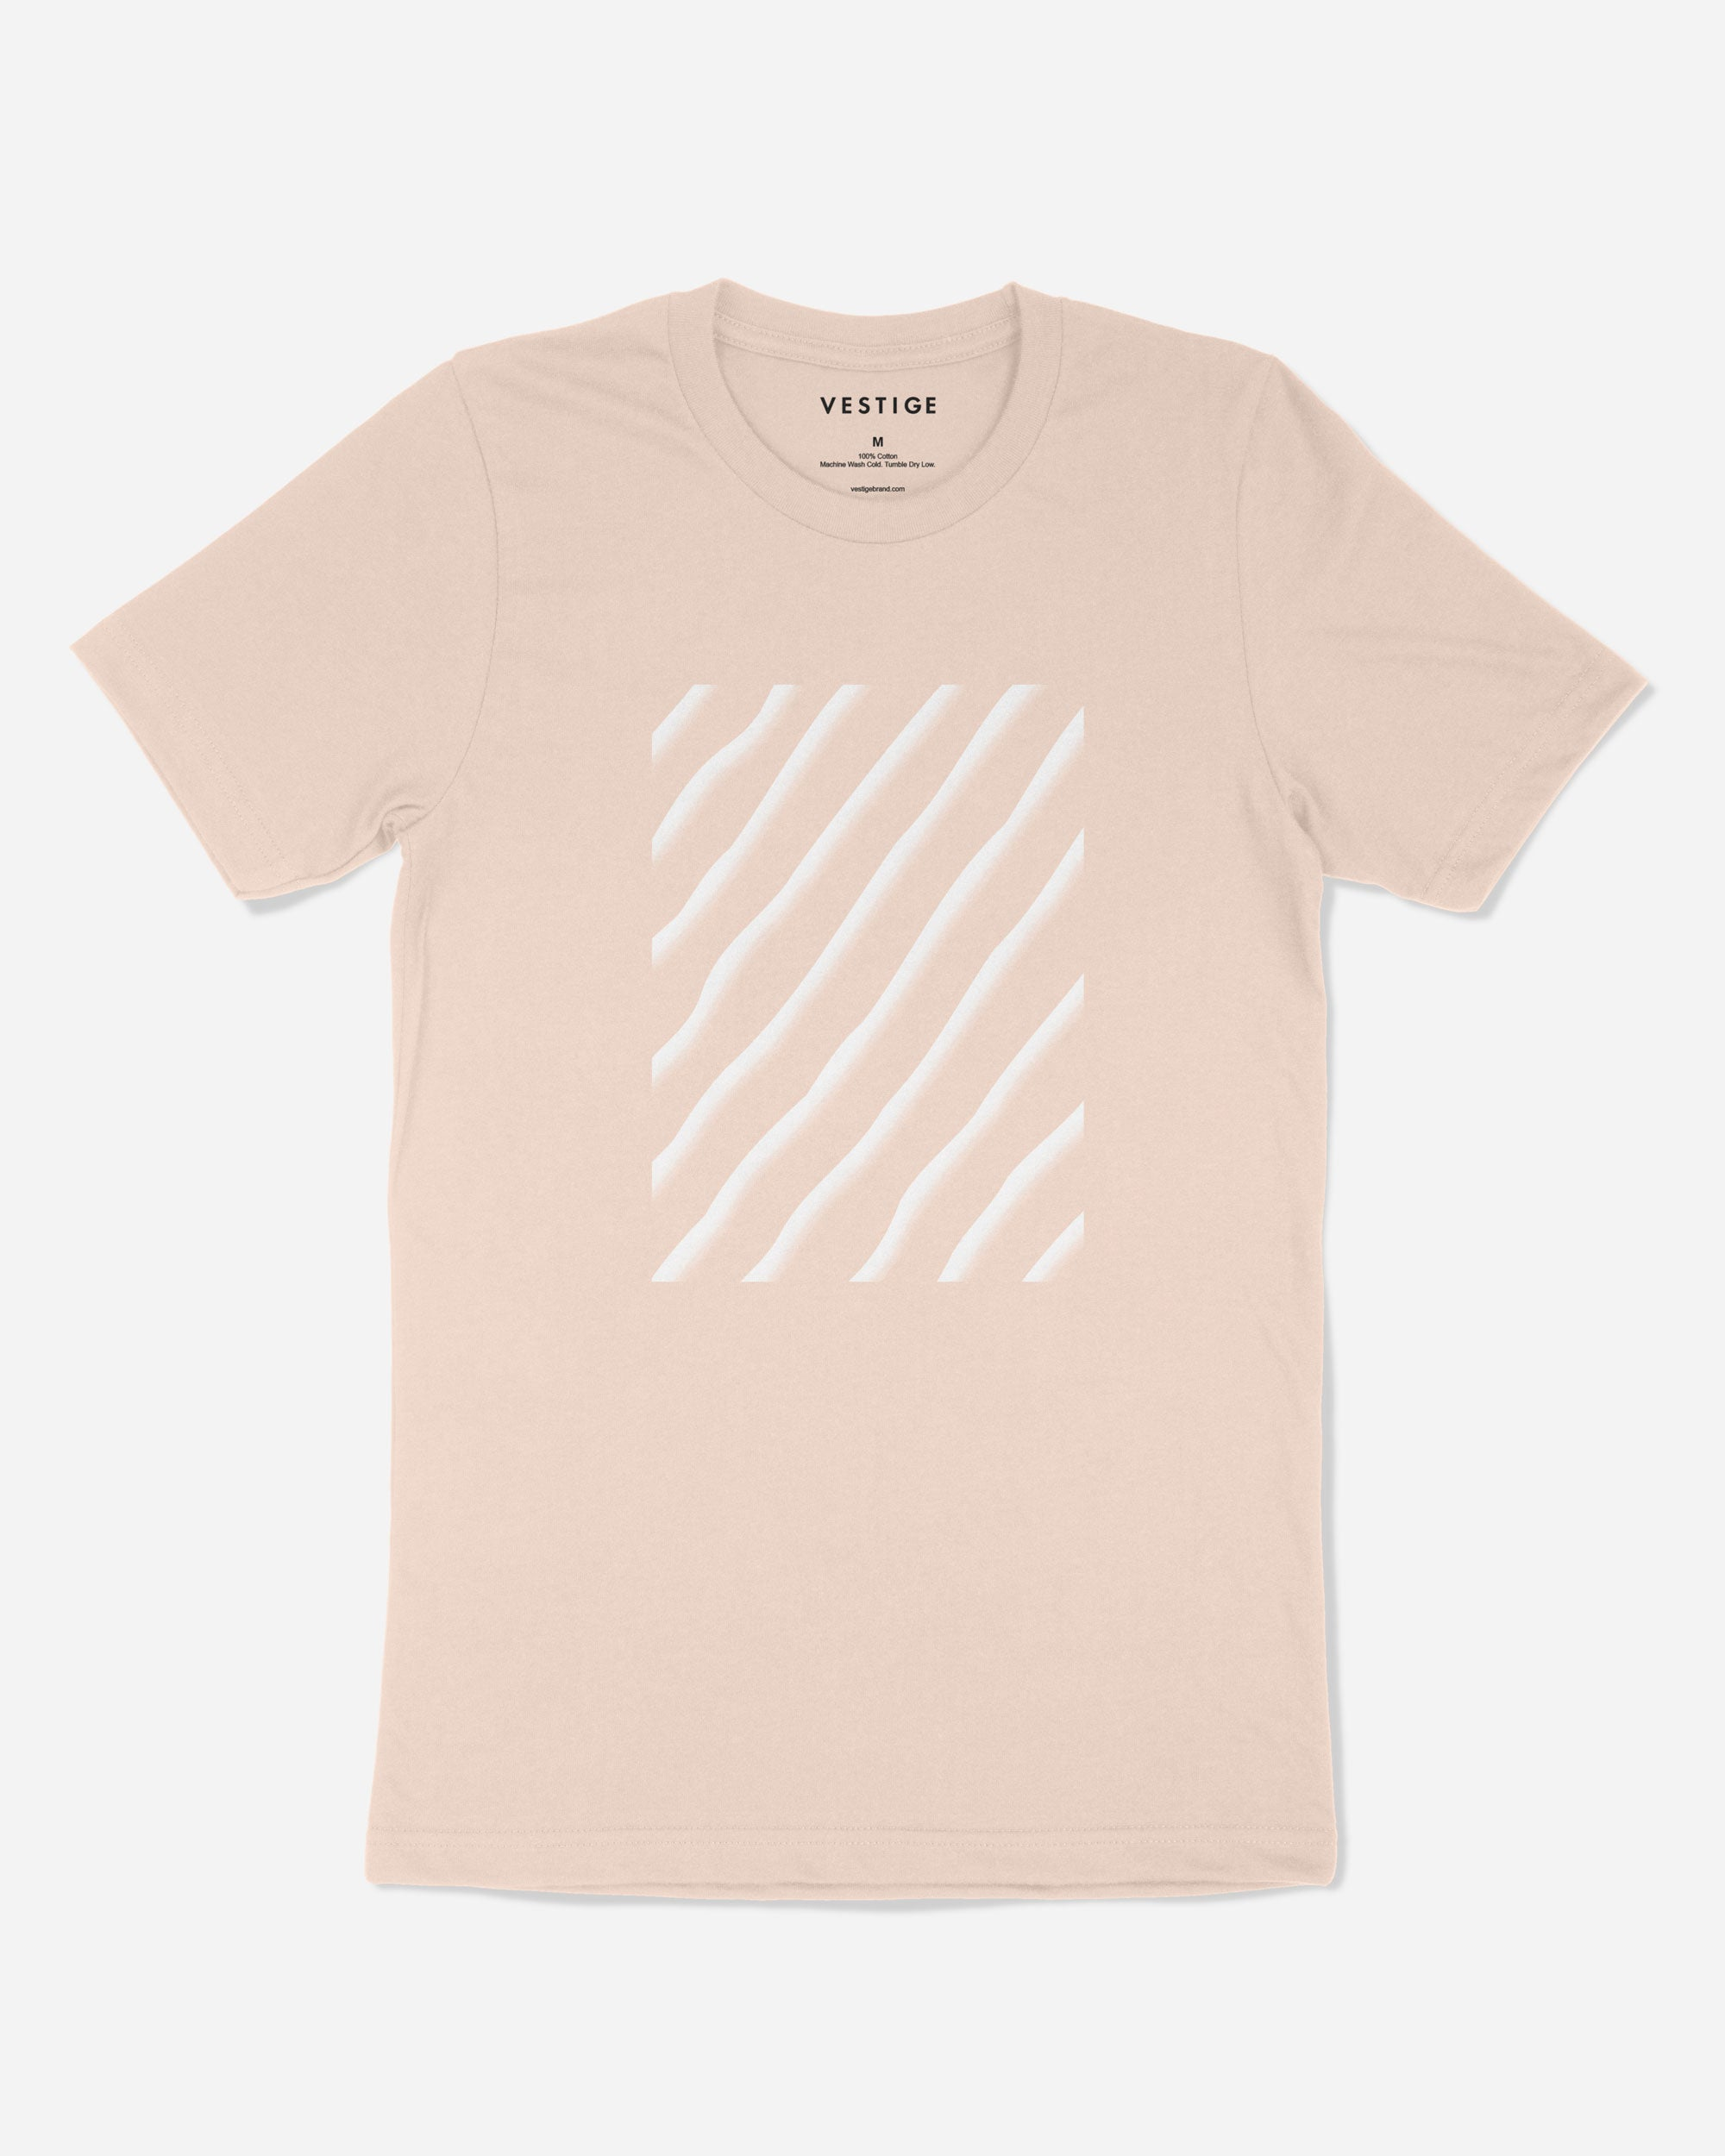 Sand Ripple T-Shirt, Clay